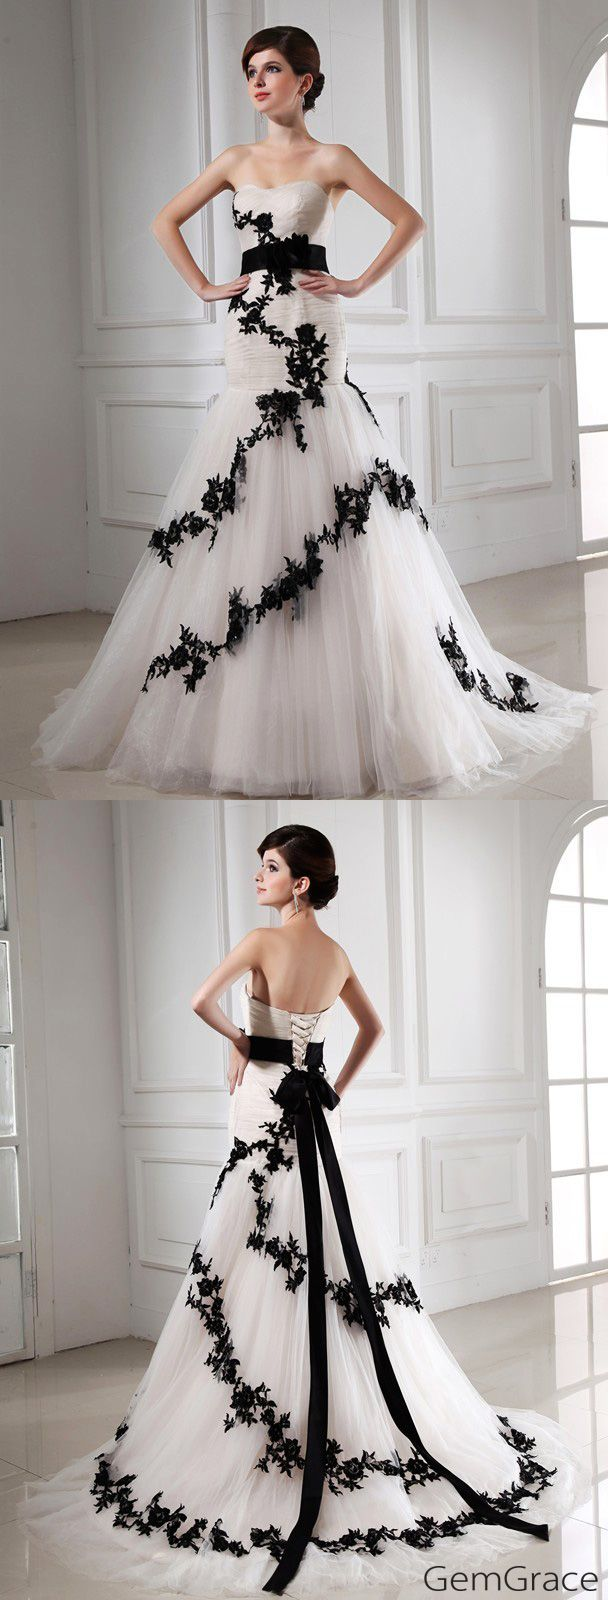 Special white with black lace wedding dress